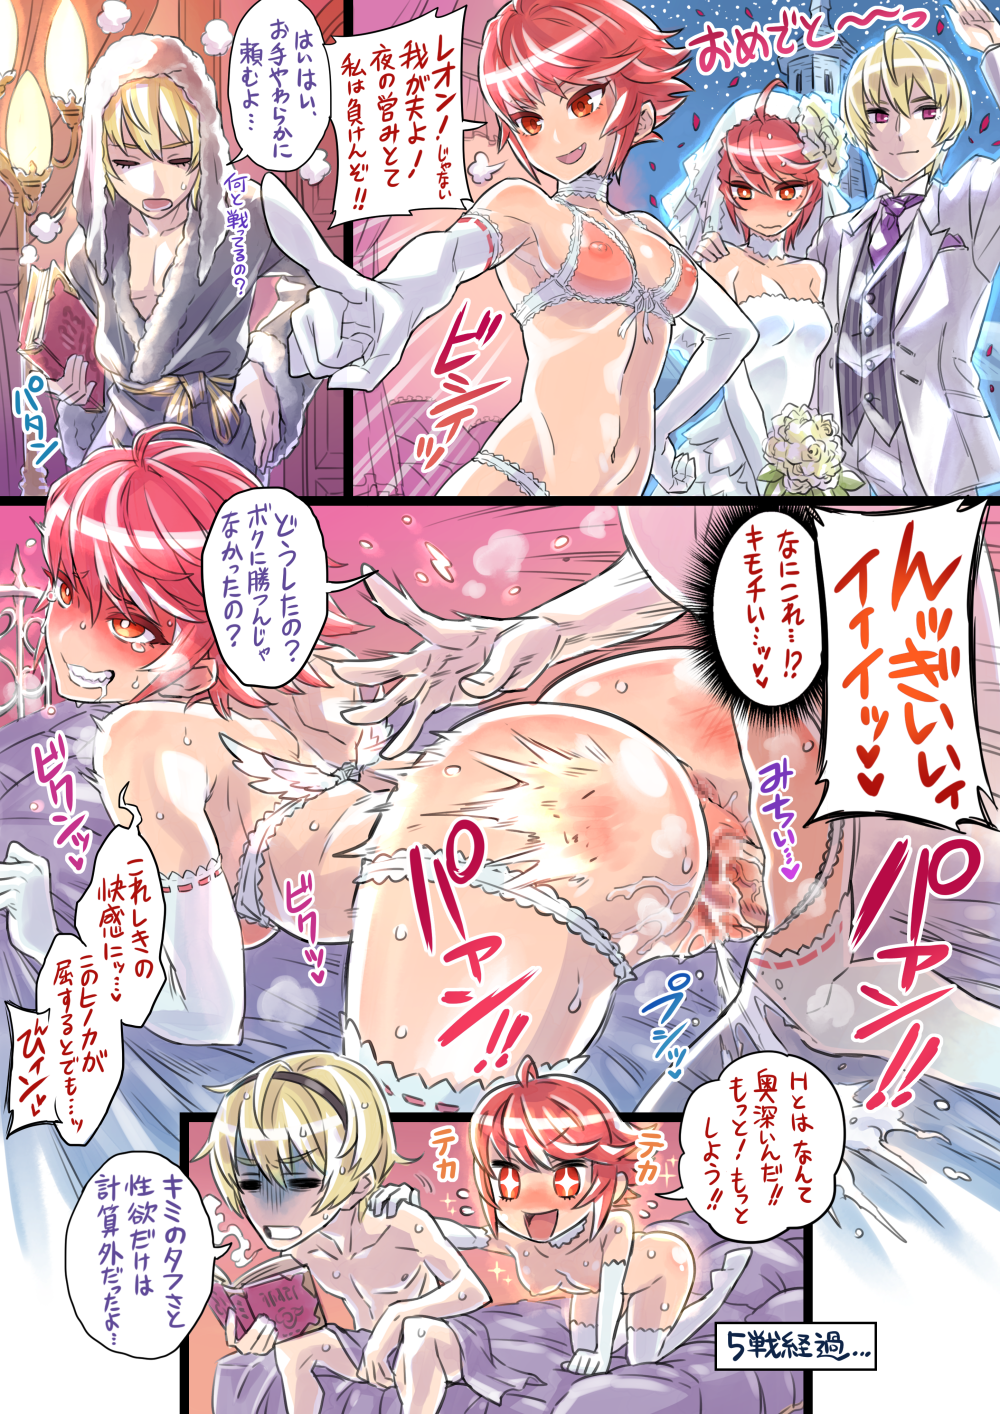 Fire Emblem Porn Pics intended for hinoka and leon (fire emblem and fire emblem if) drawnmimonel